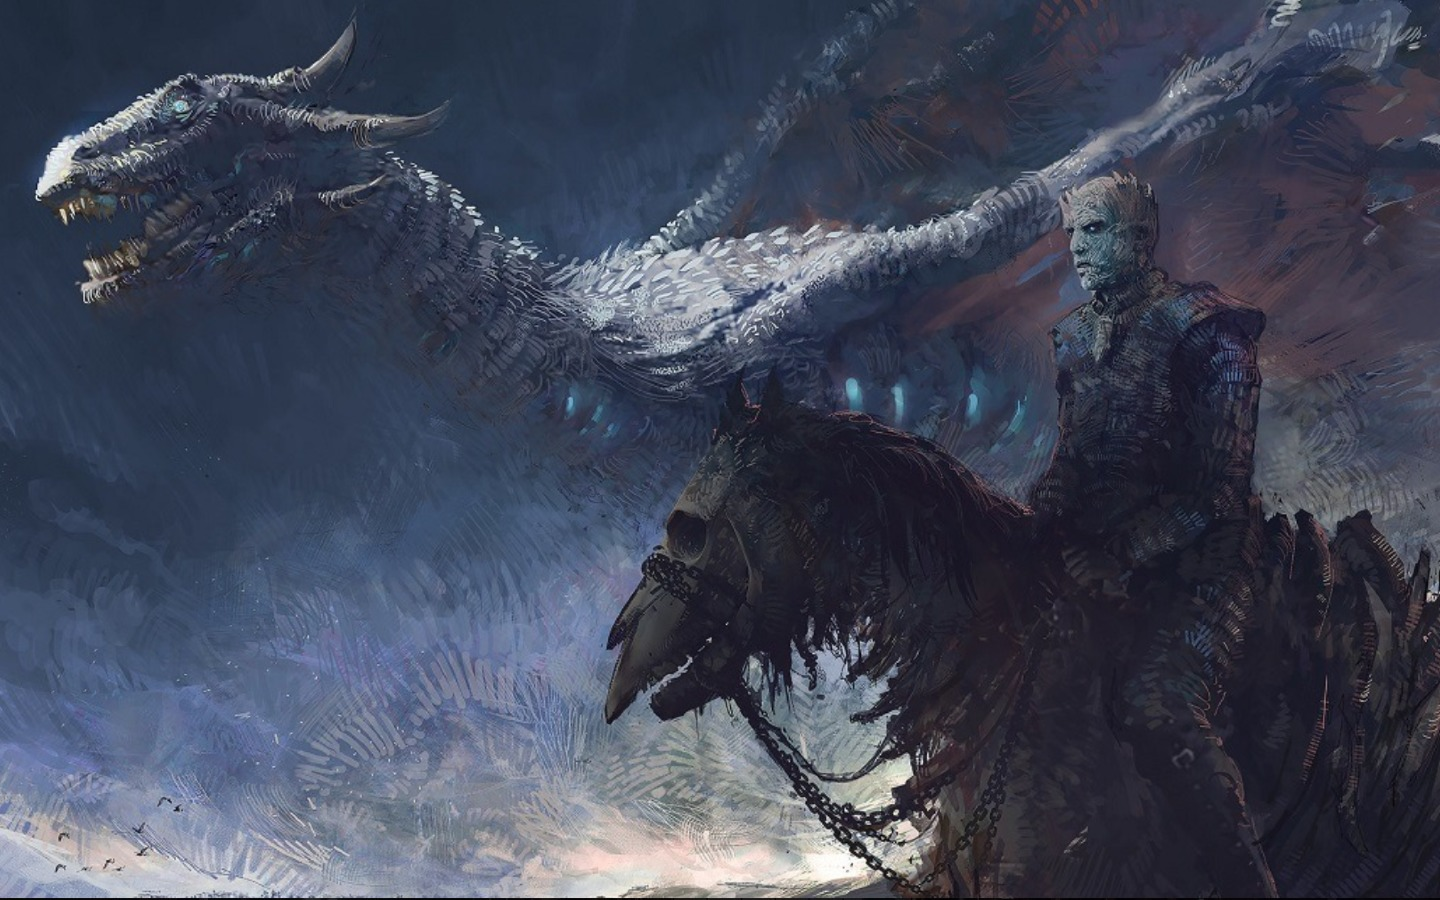 Game Of Thrones 7 White Walker And Ice Dragon Art, Full HD